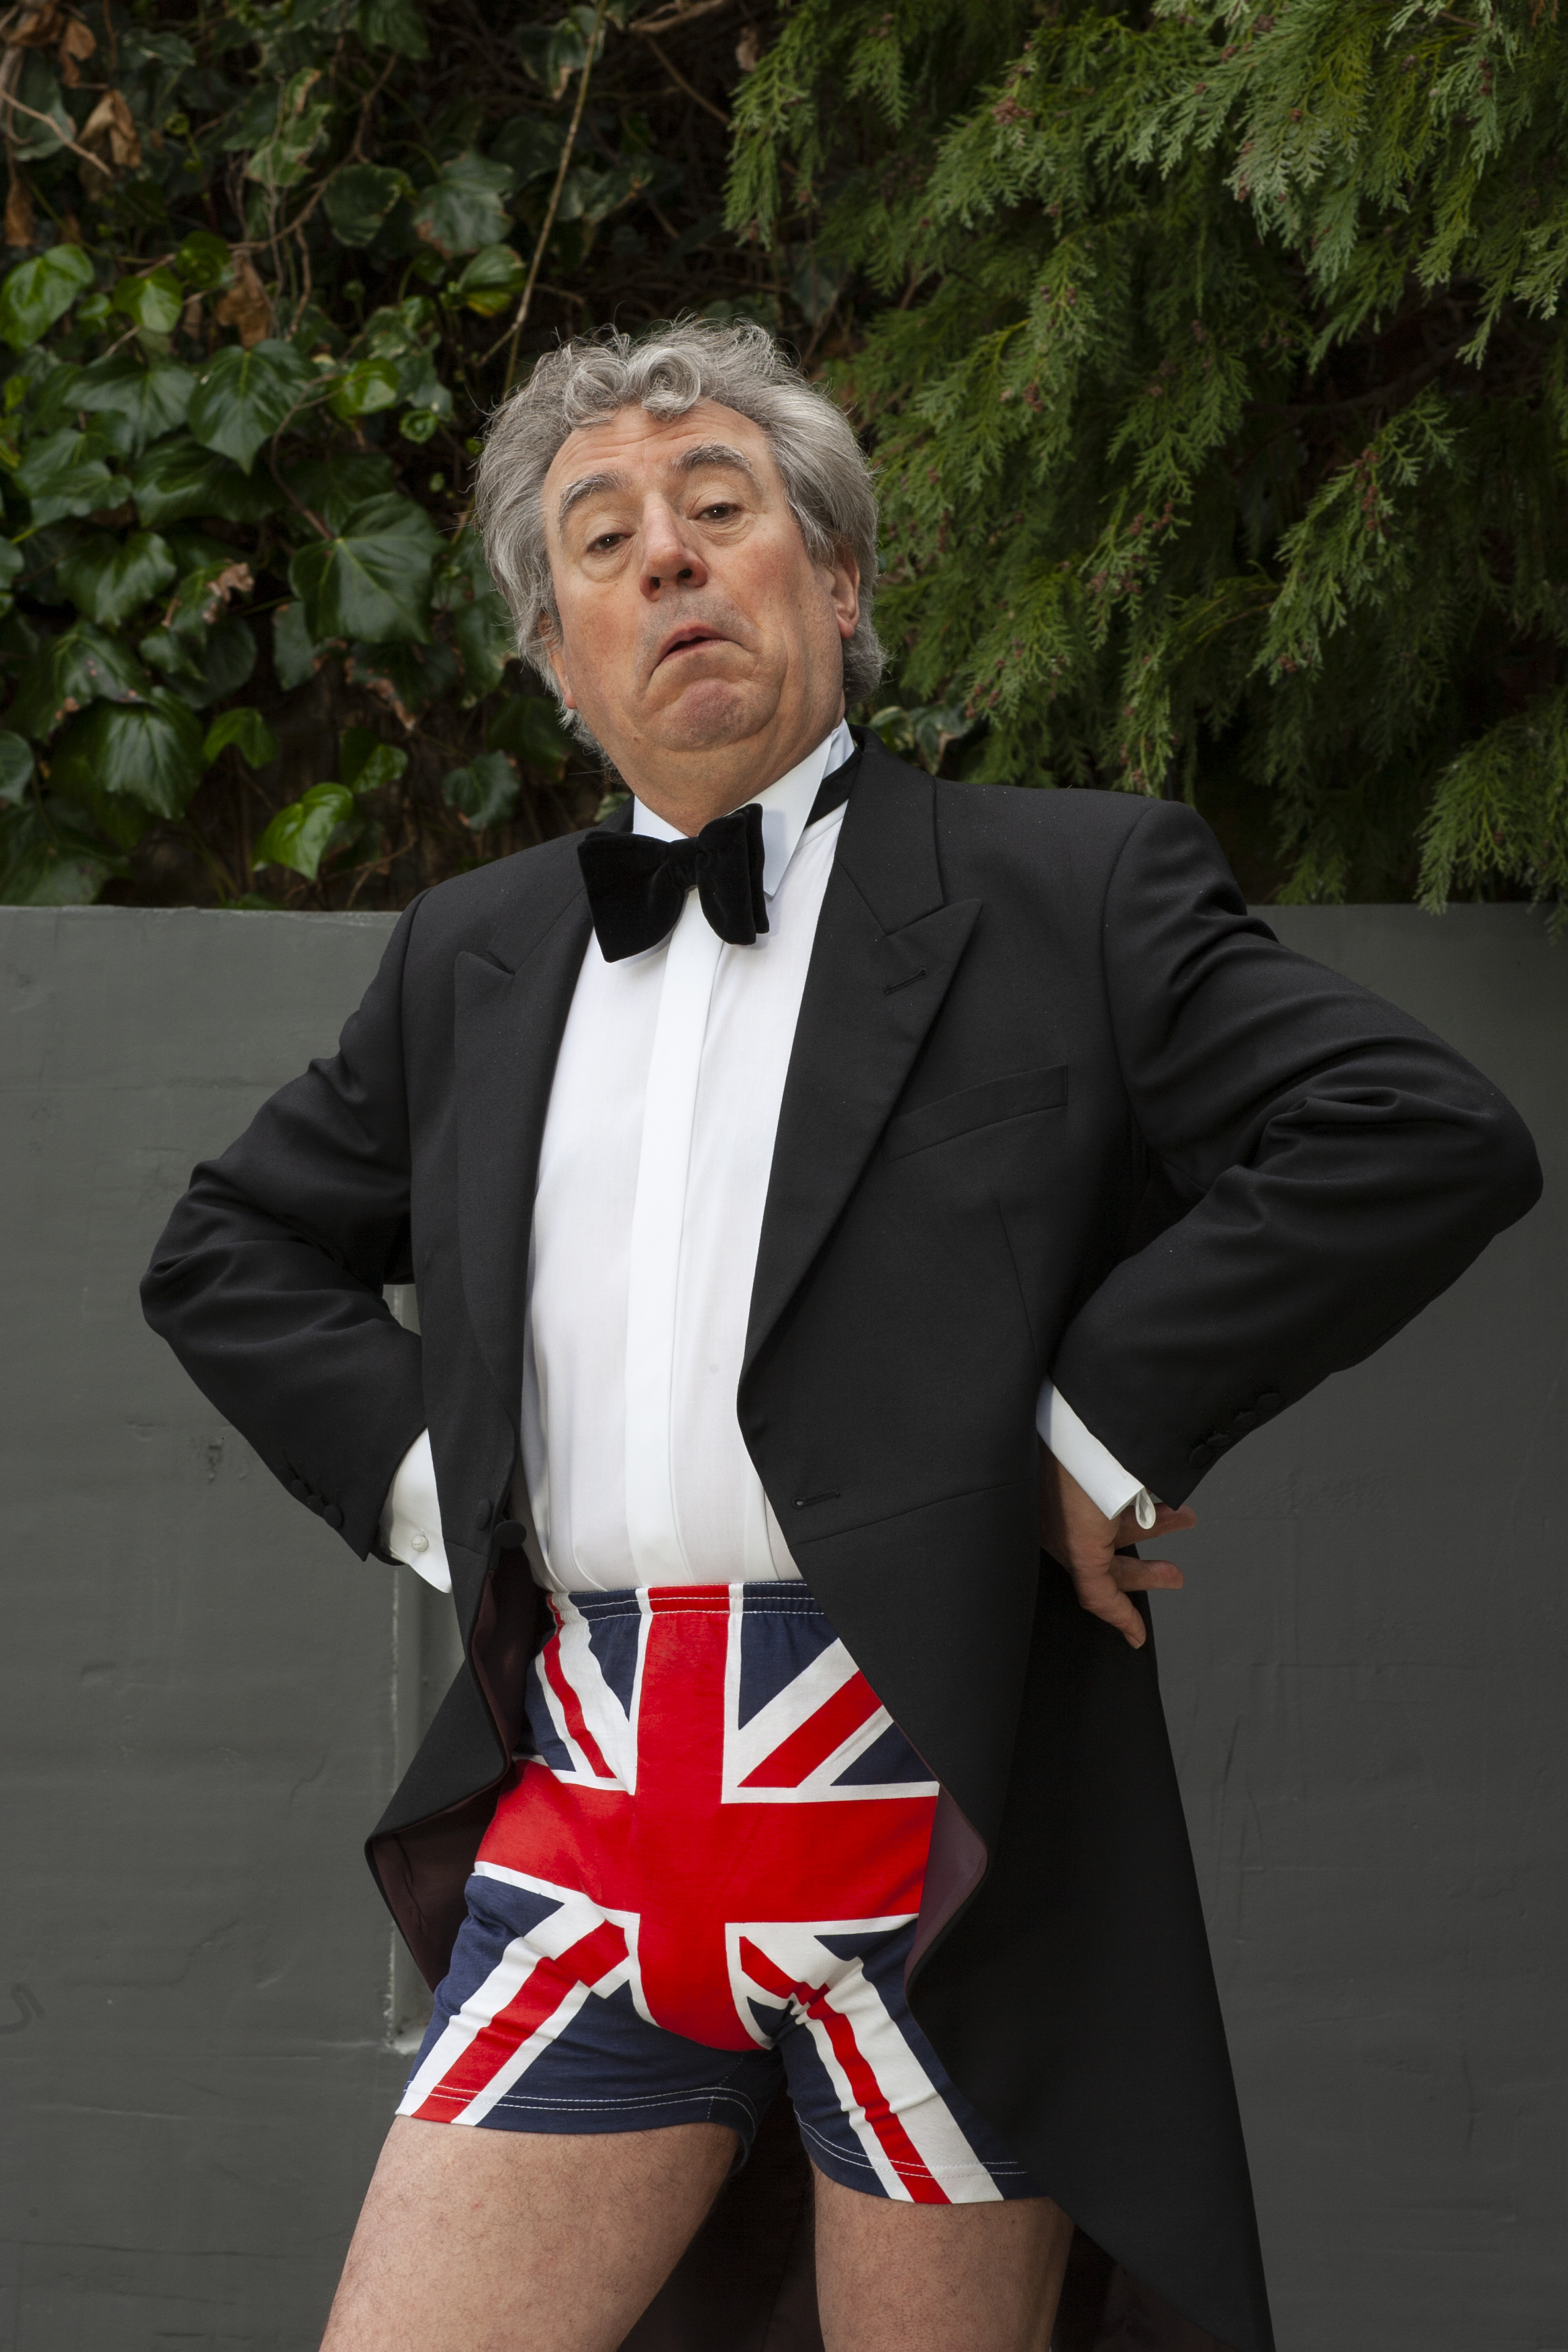 Terry Jones poses at his home in Hampstead, London wearing a pair of Union Jack flag underpants, on May 3, 2005.